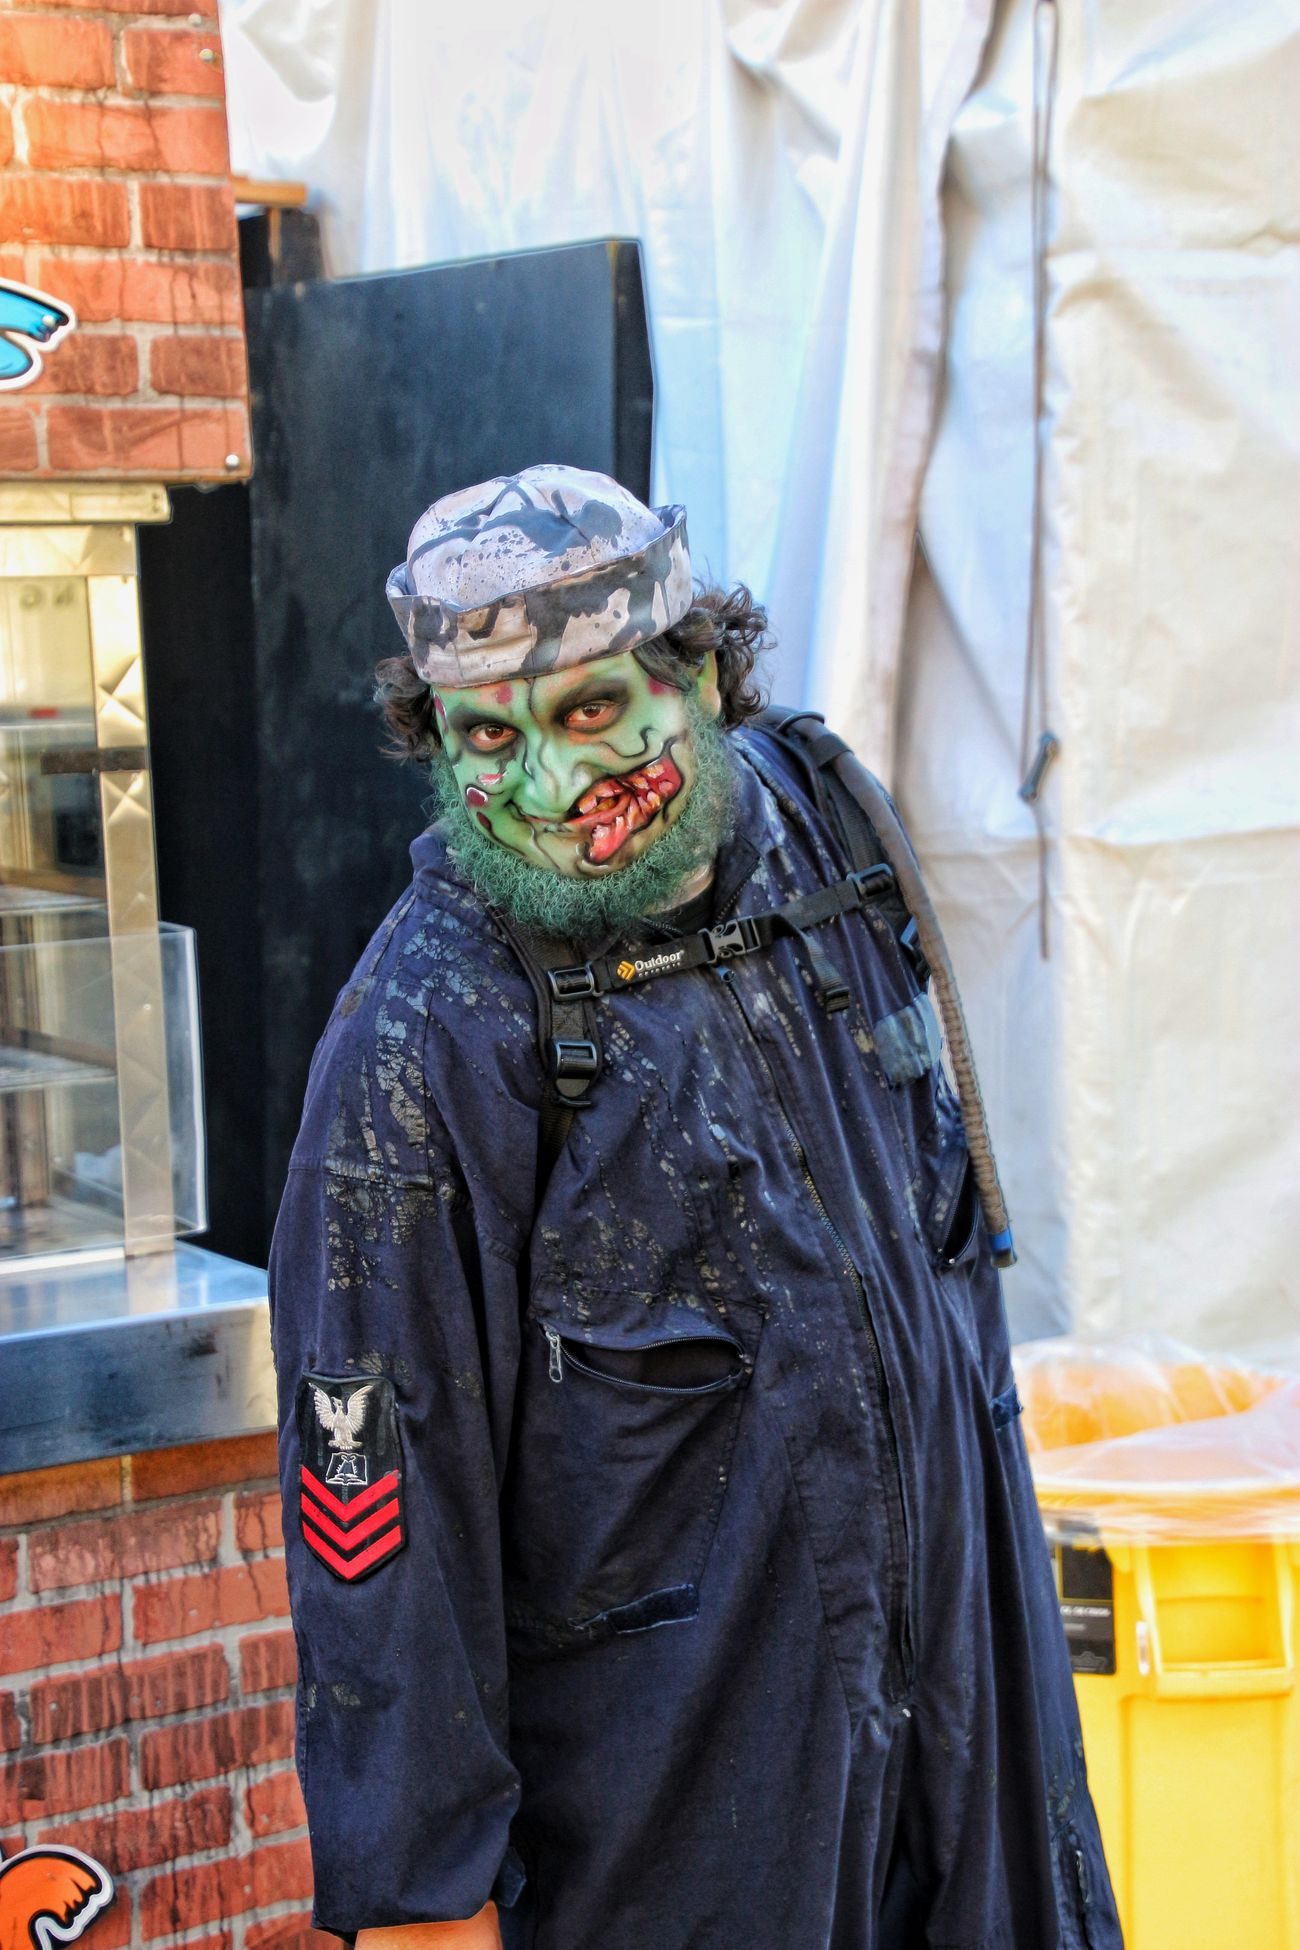 Halloween costume Halloween Horrors Halloween Costumes Halloween2016 Halloween EyeEm Halloween_Collection Zombiewalk  Zombie Makeup Zombieapocalypse ZombieArt Zombie Boy